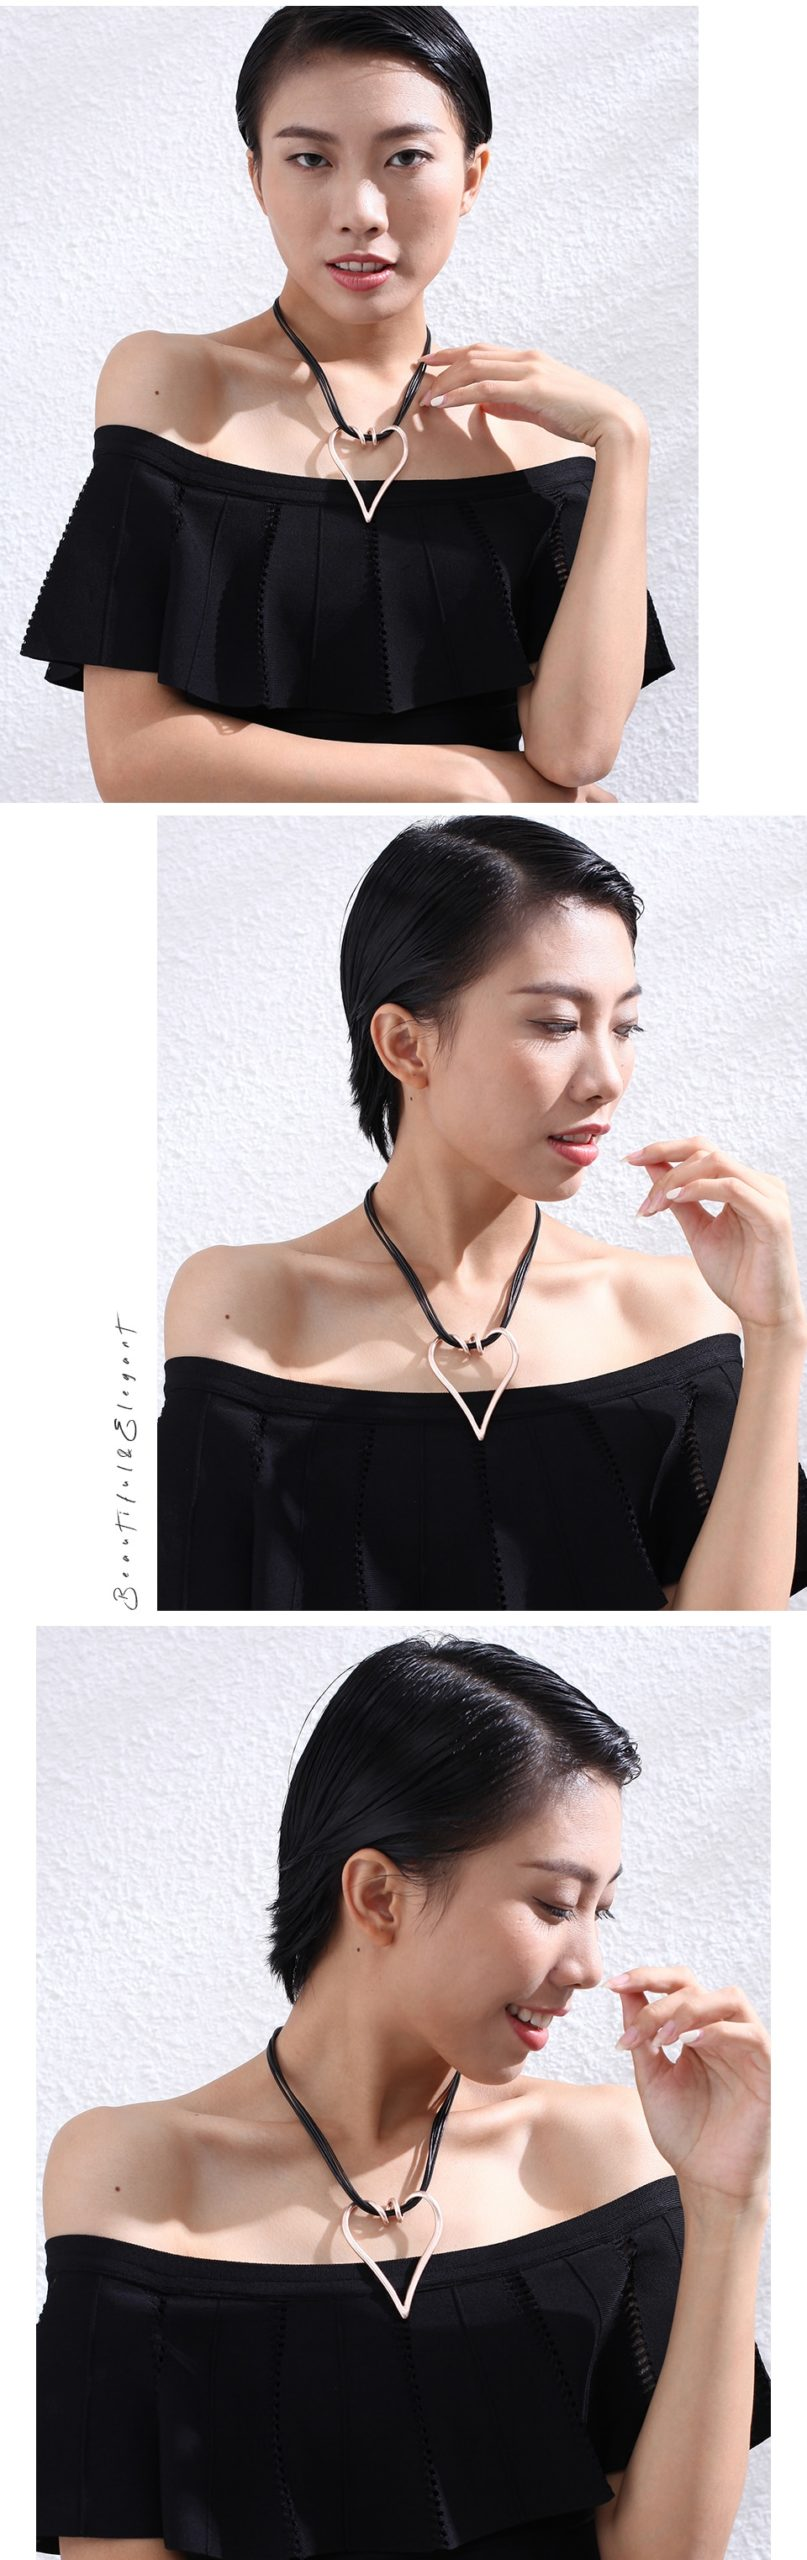 Rose Gold Heart Choker Necklace Jewelry On The Neck Decoration For Women's Simple Statement Suspension Pendants Accessories Gift